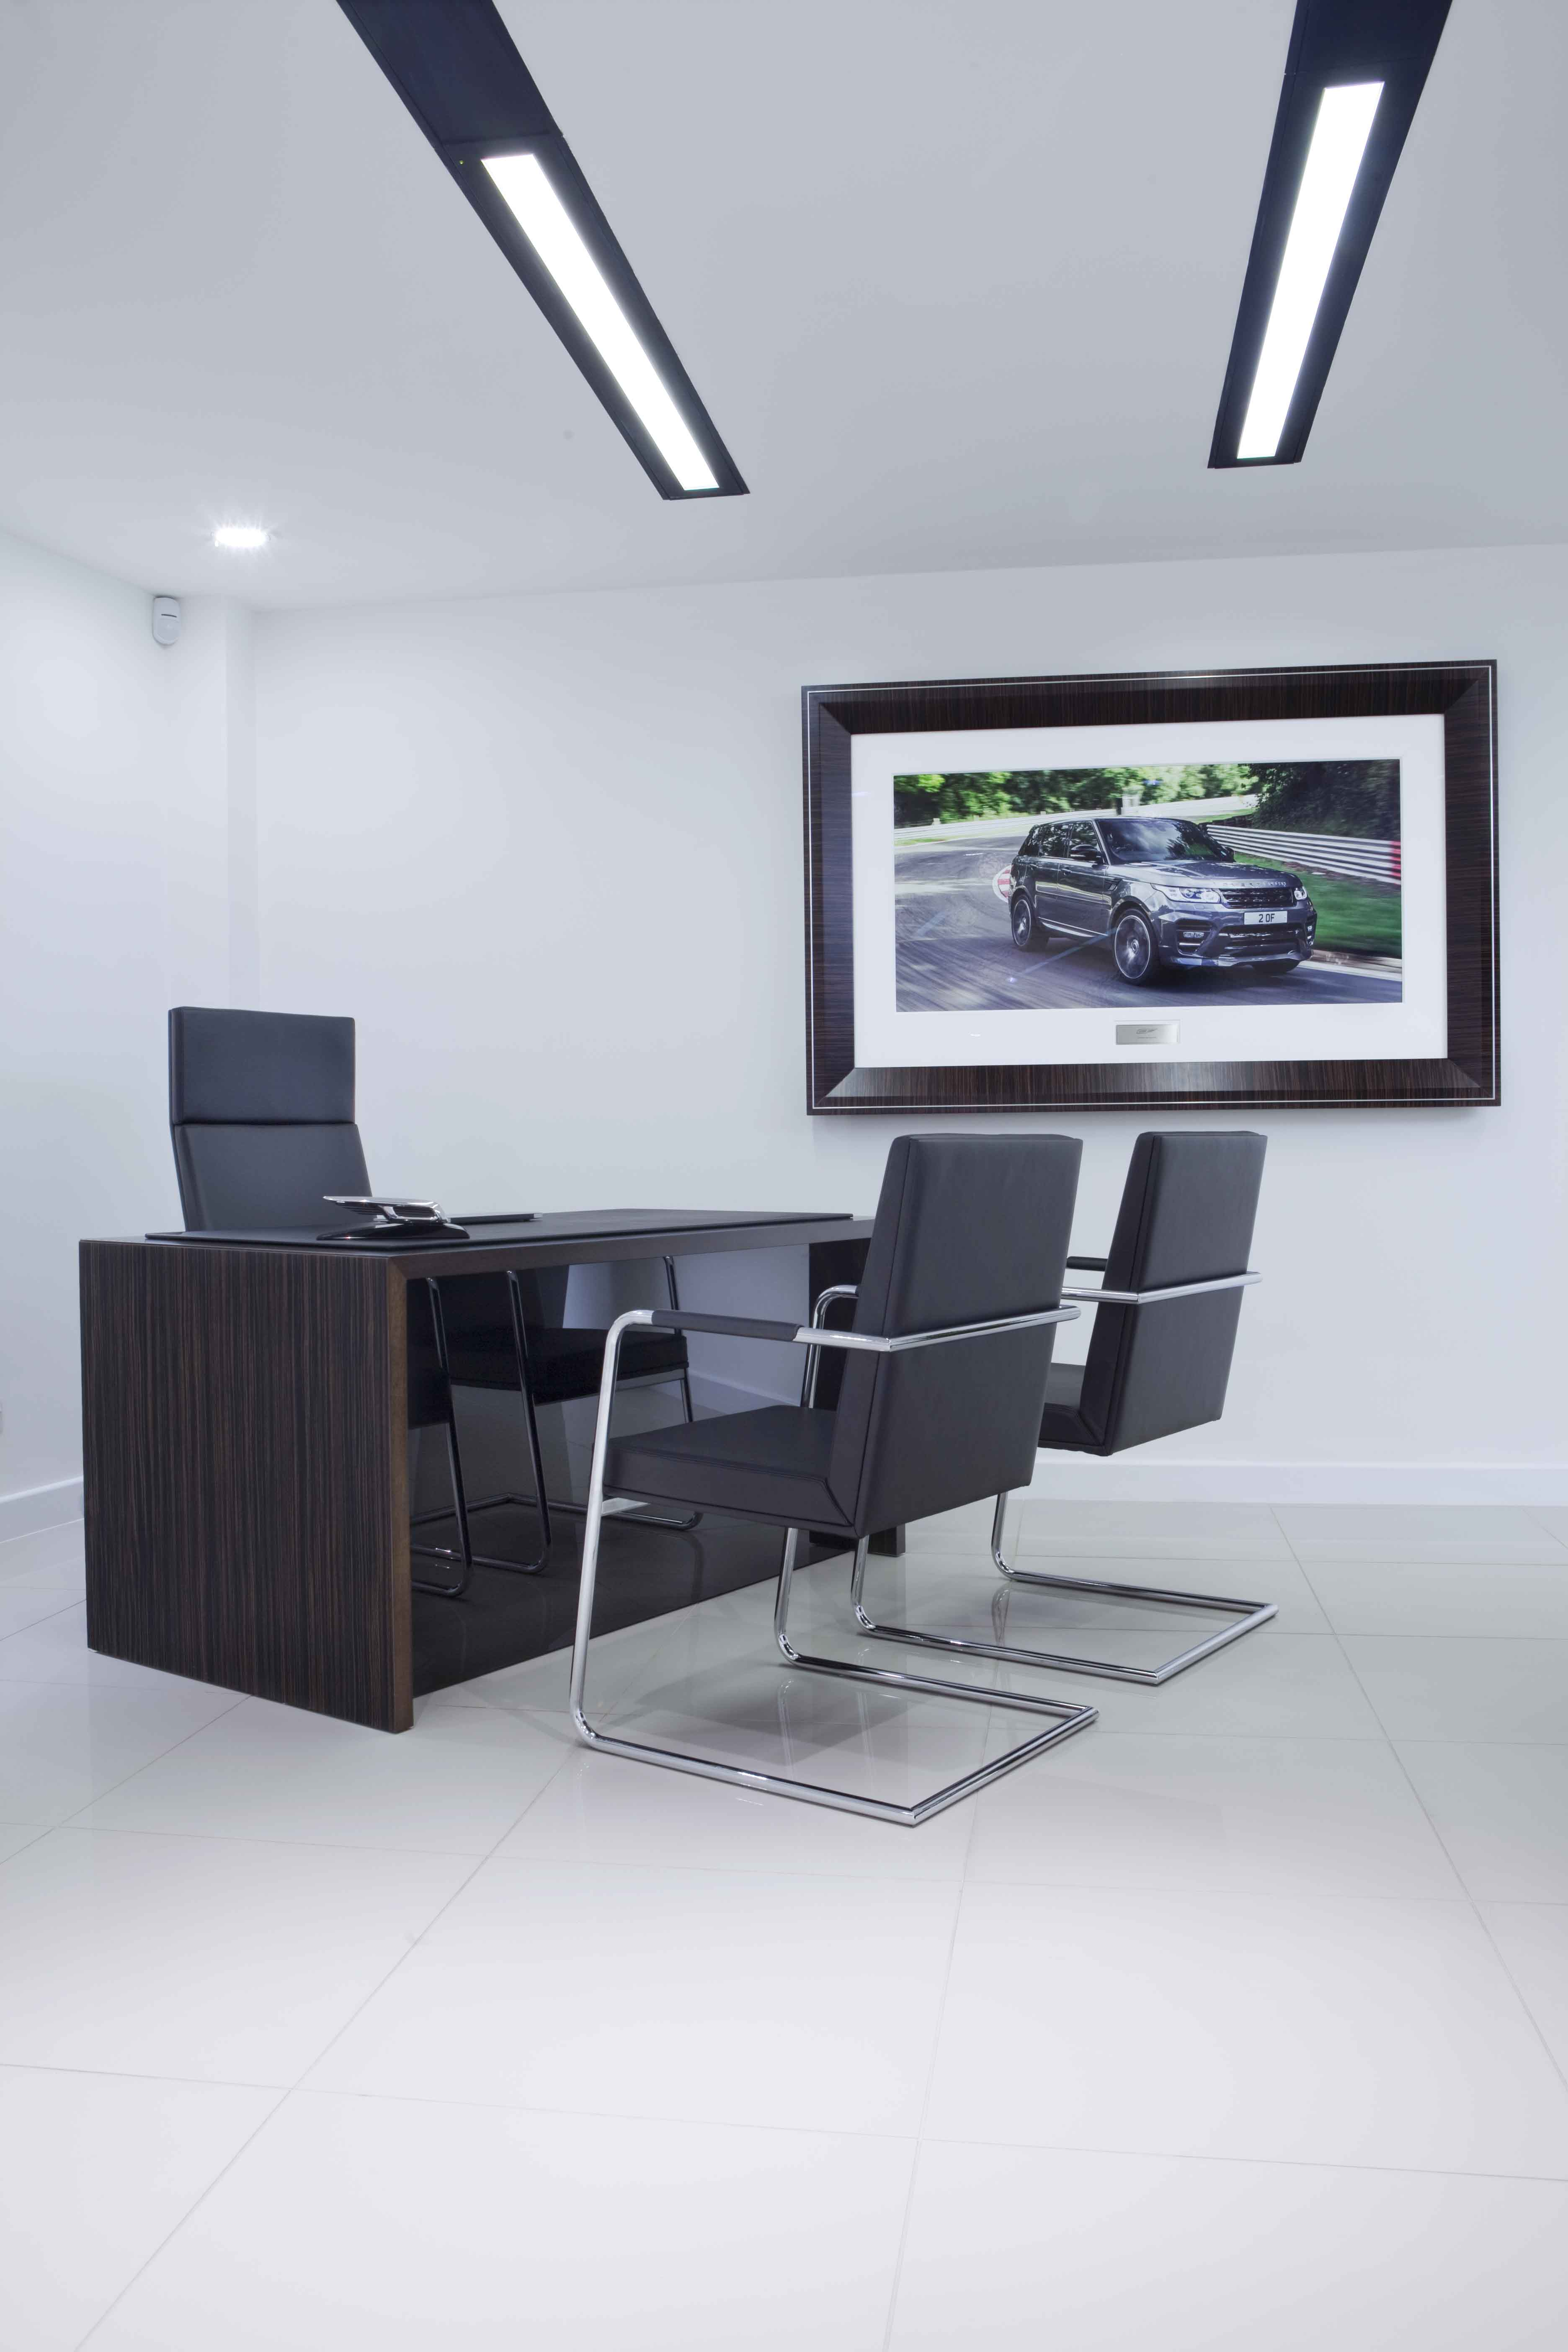 71 Office Furniture For Nhs Bt Office Furniture Suppliers Neas Chooses Custom Consoles Desks